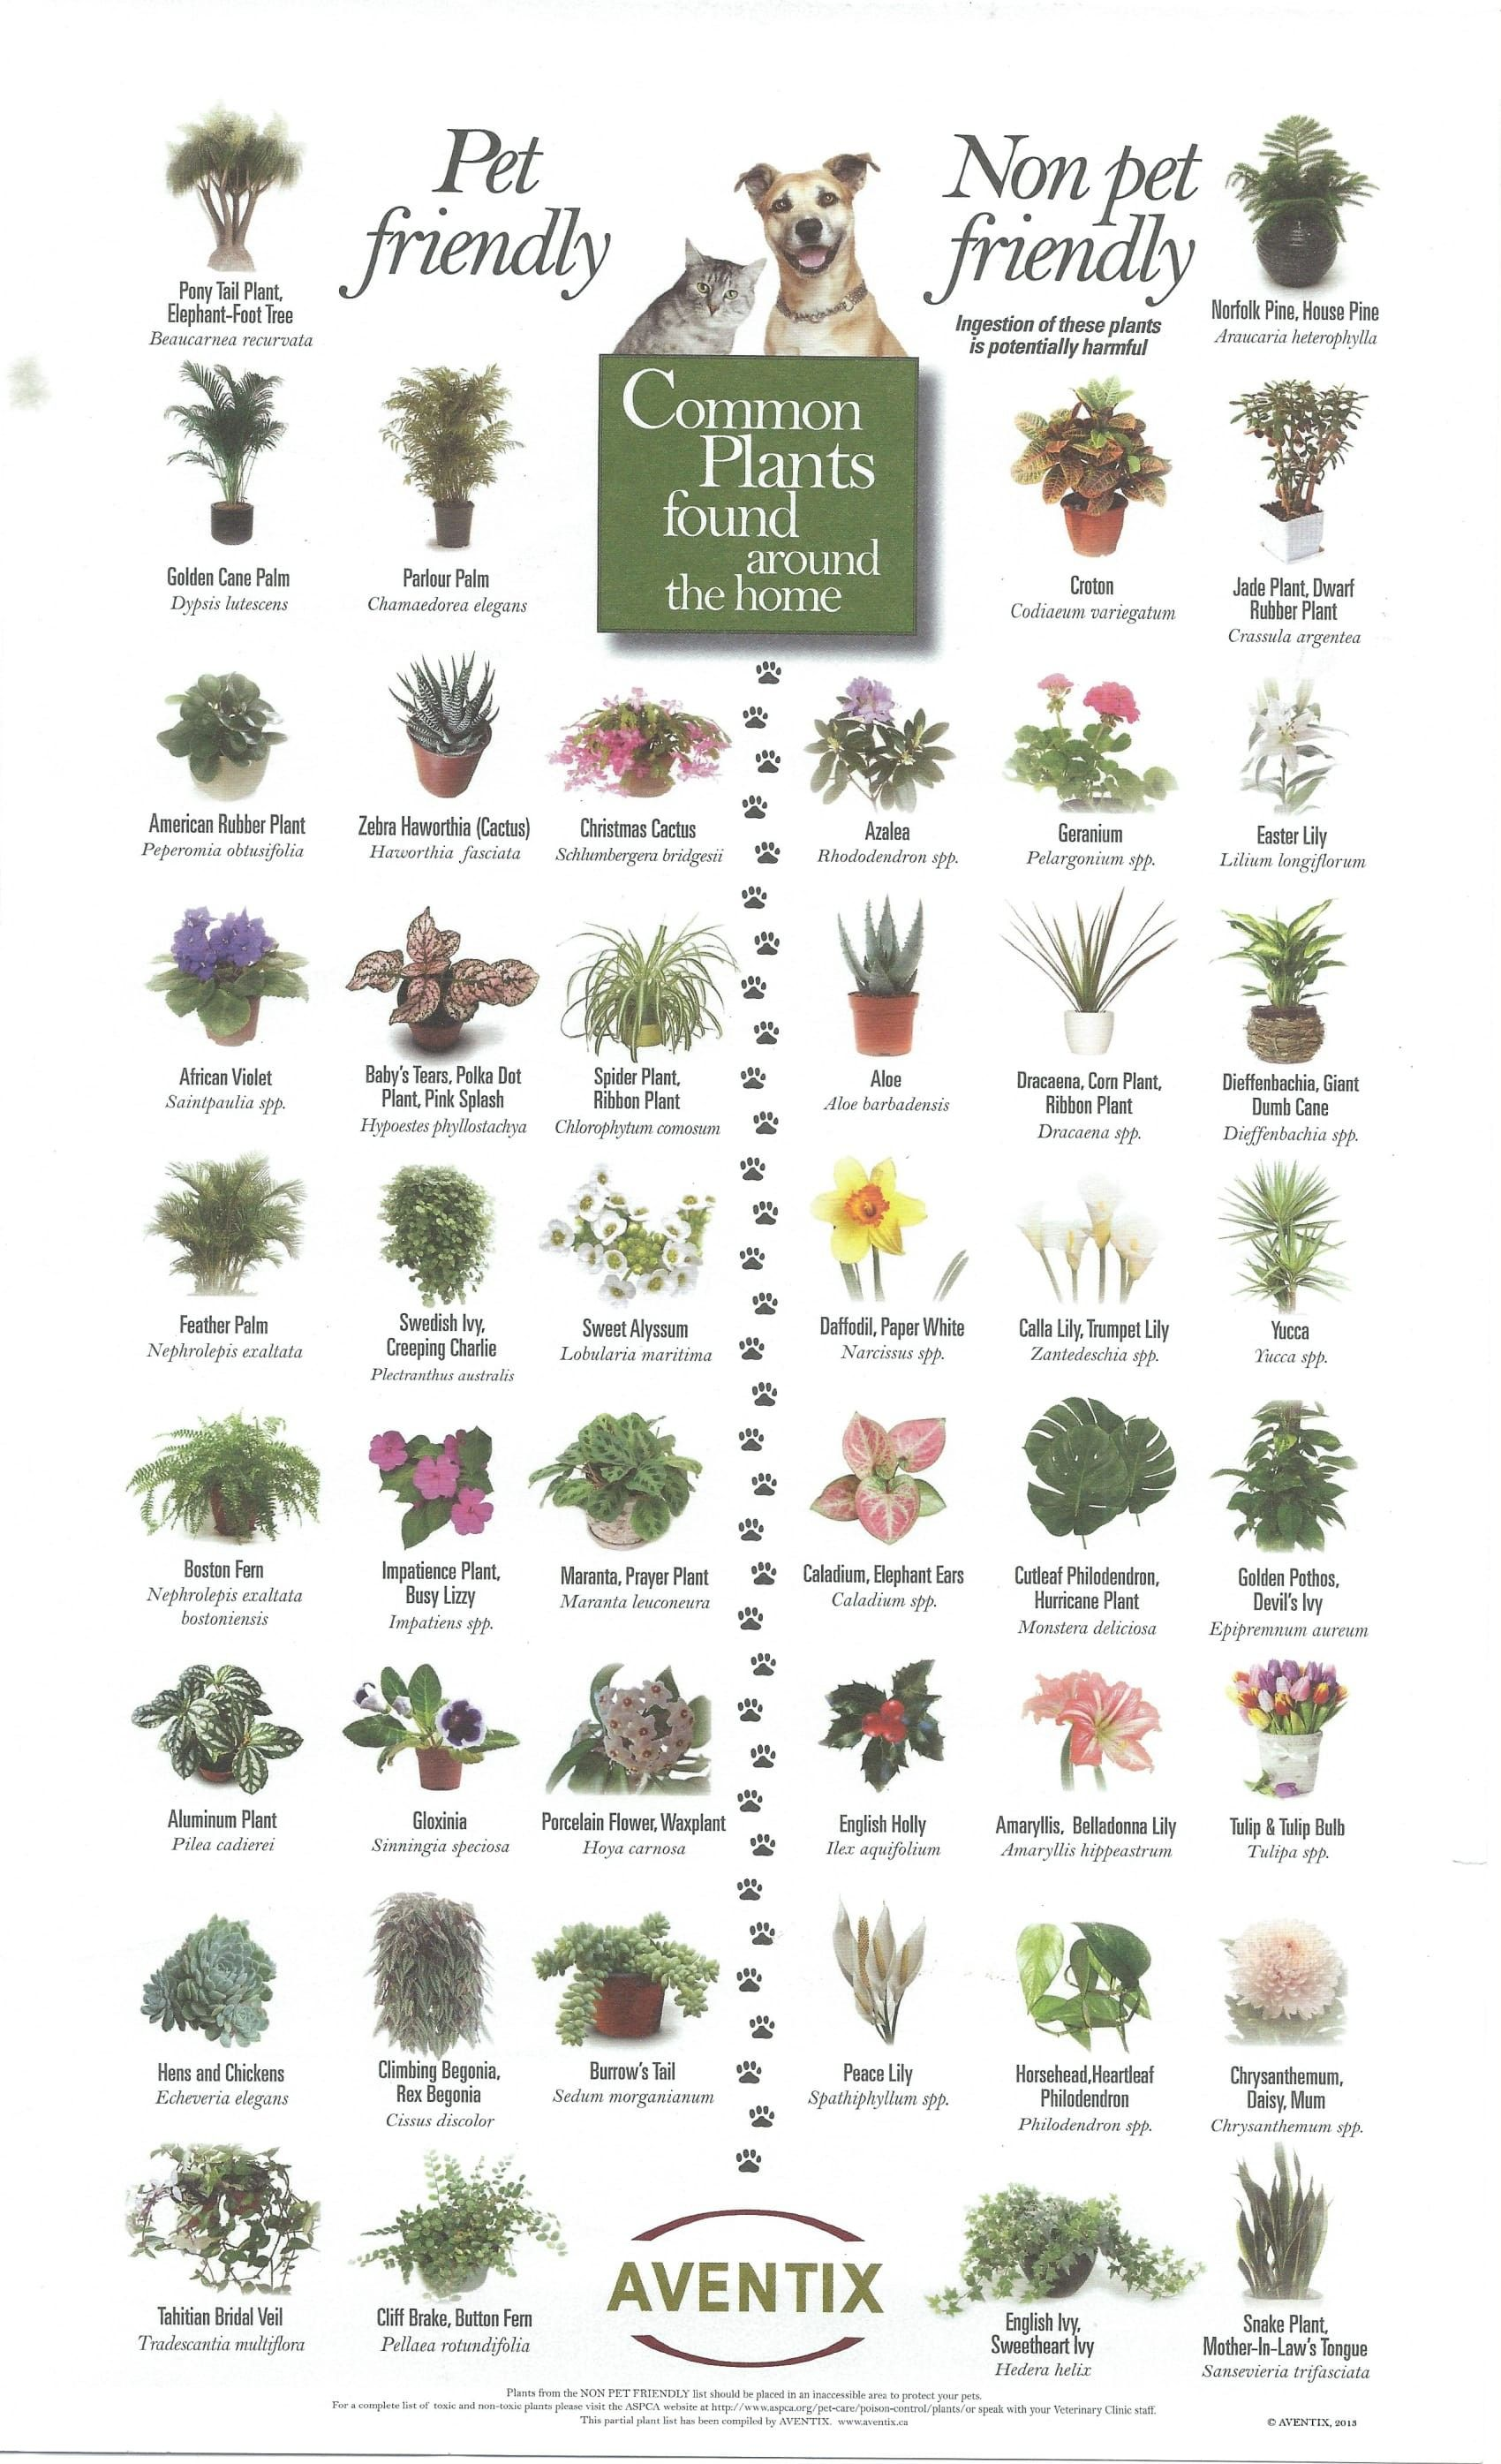 Pet Friendly and Not So Pet Friendly Plants | Animal Love ...